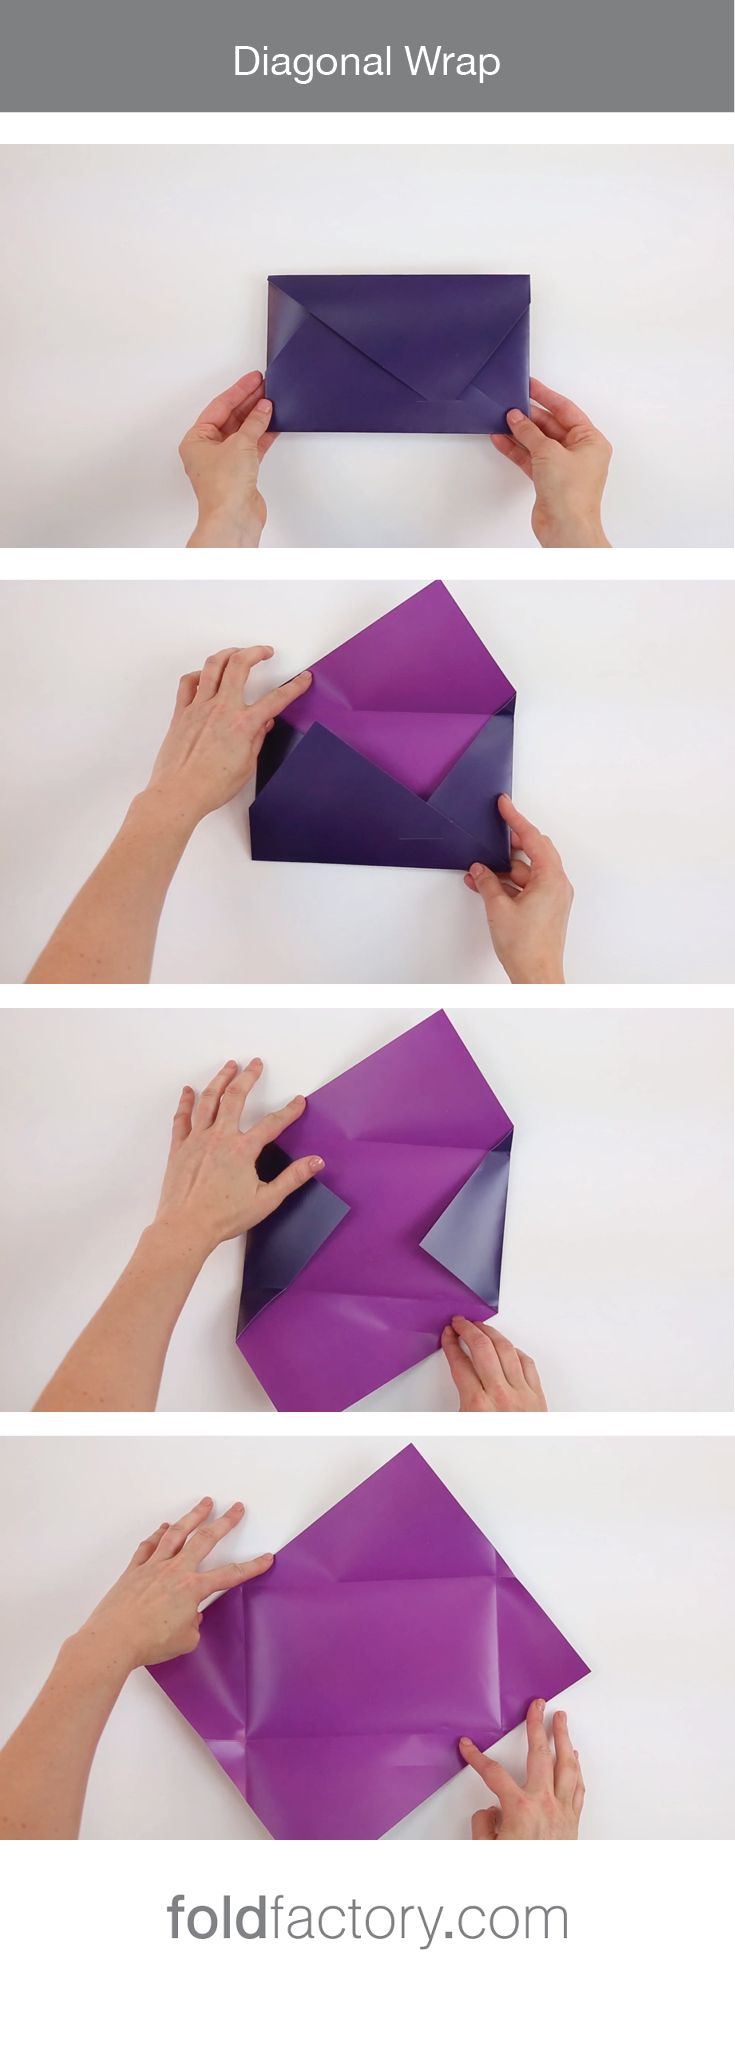 The Diagonal Wrap uses angled folds for a dramatic opening effect and…